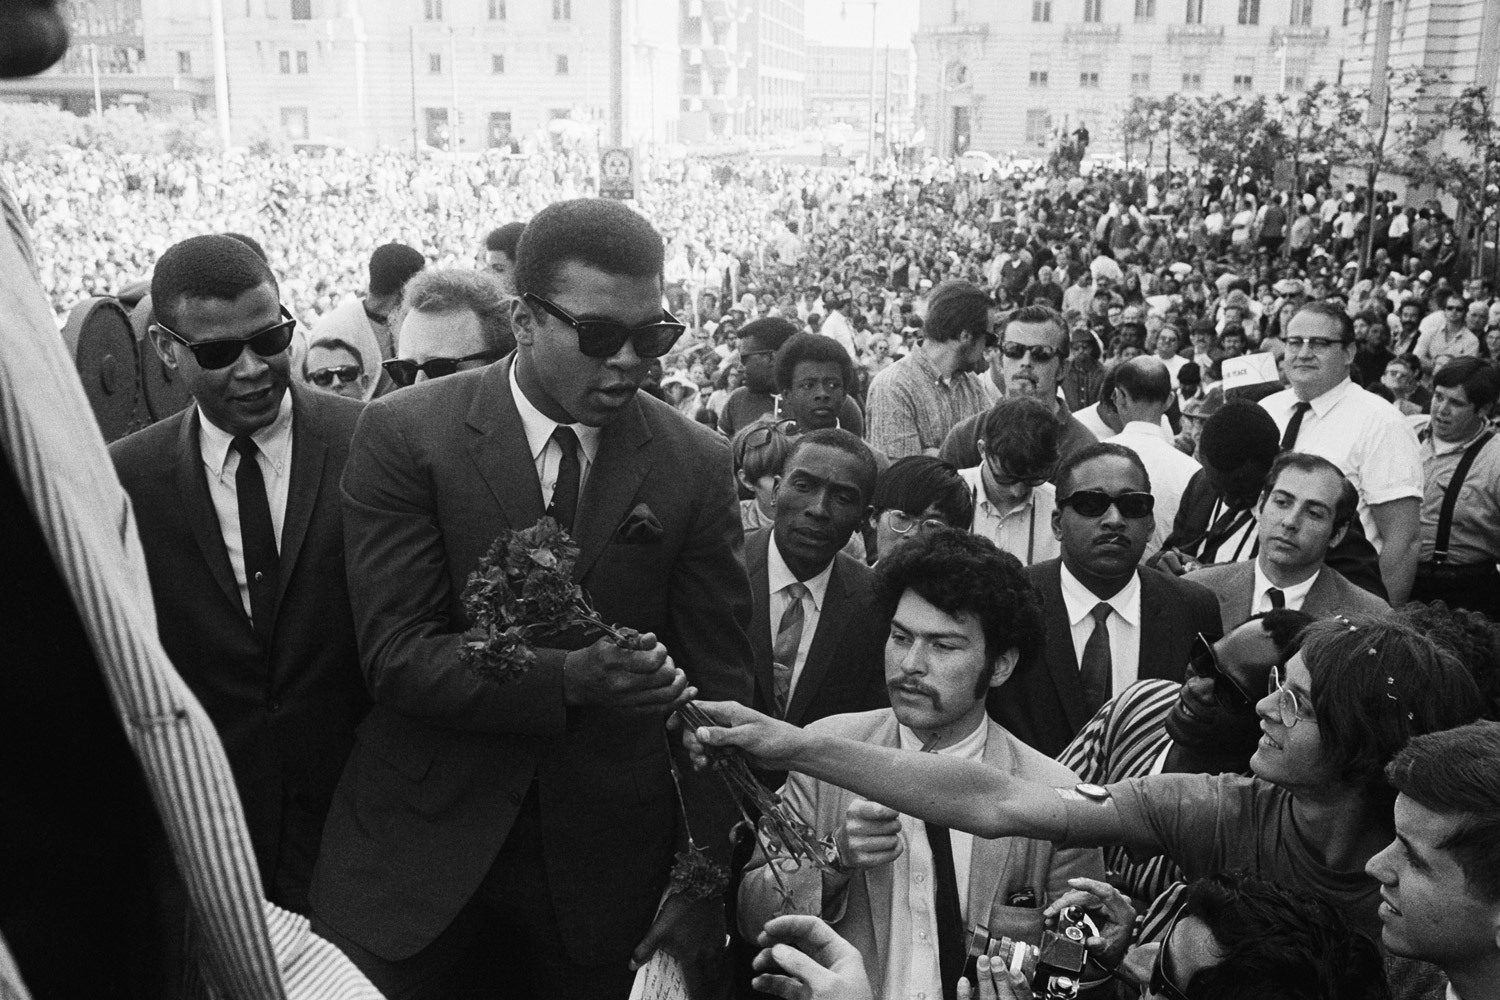 Muhammad Ali during a weeklong protest against the Vietnam War draft in San Francisco 1968